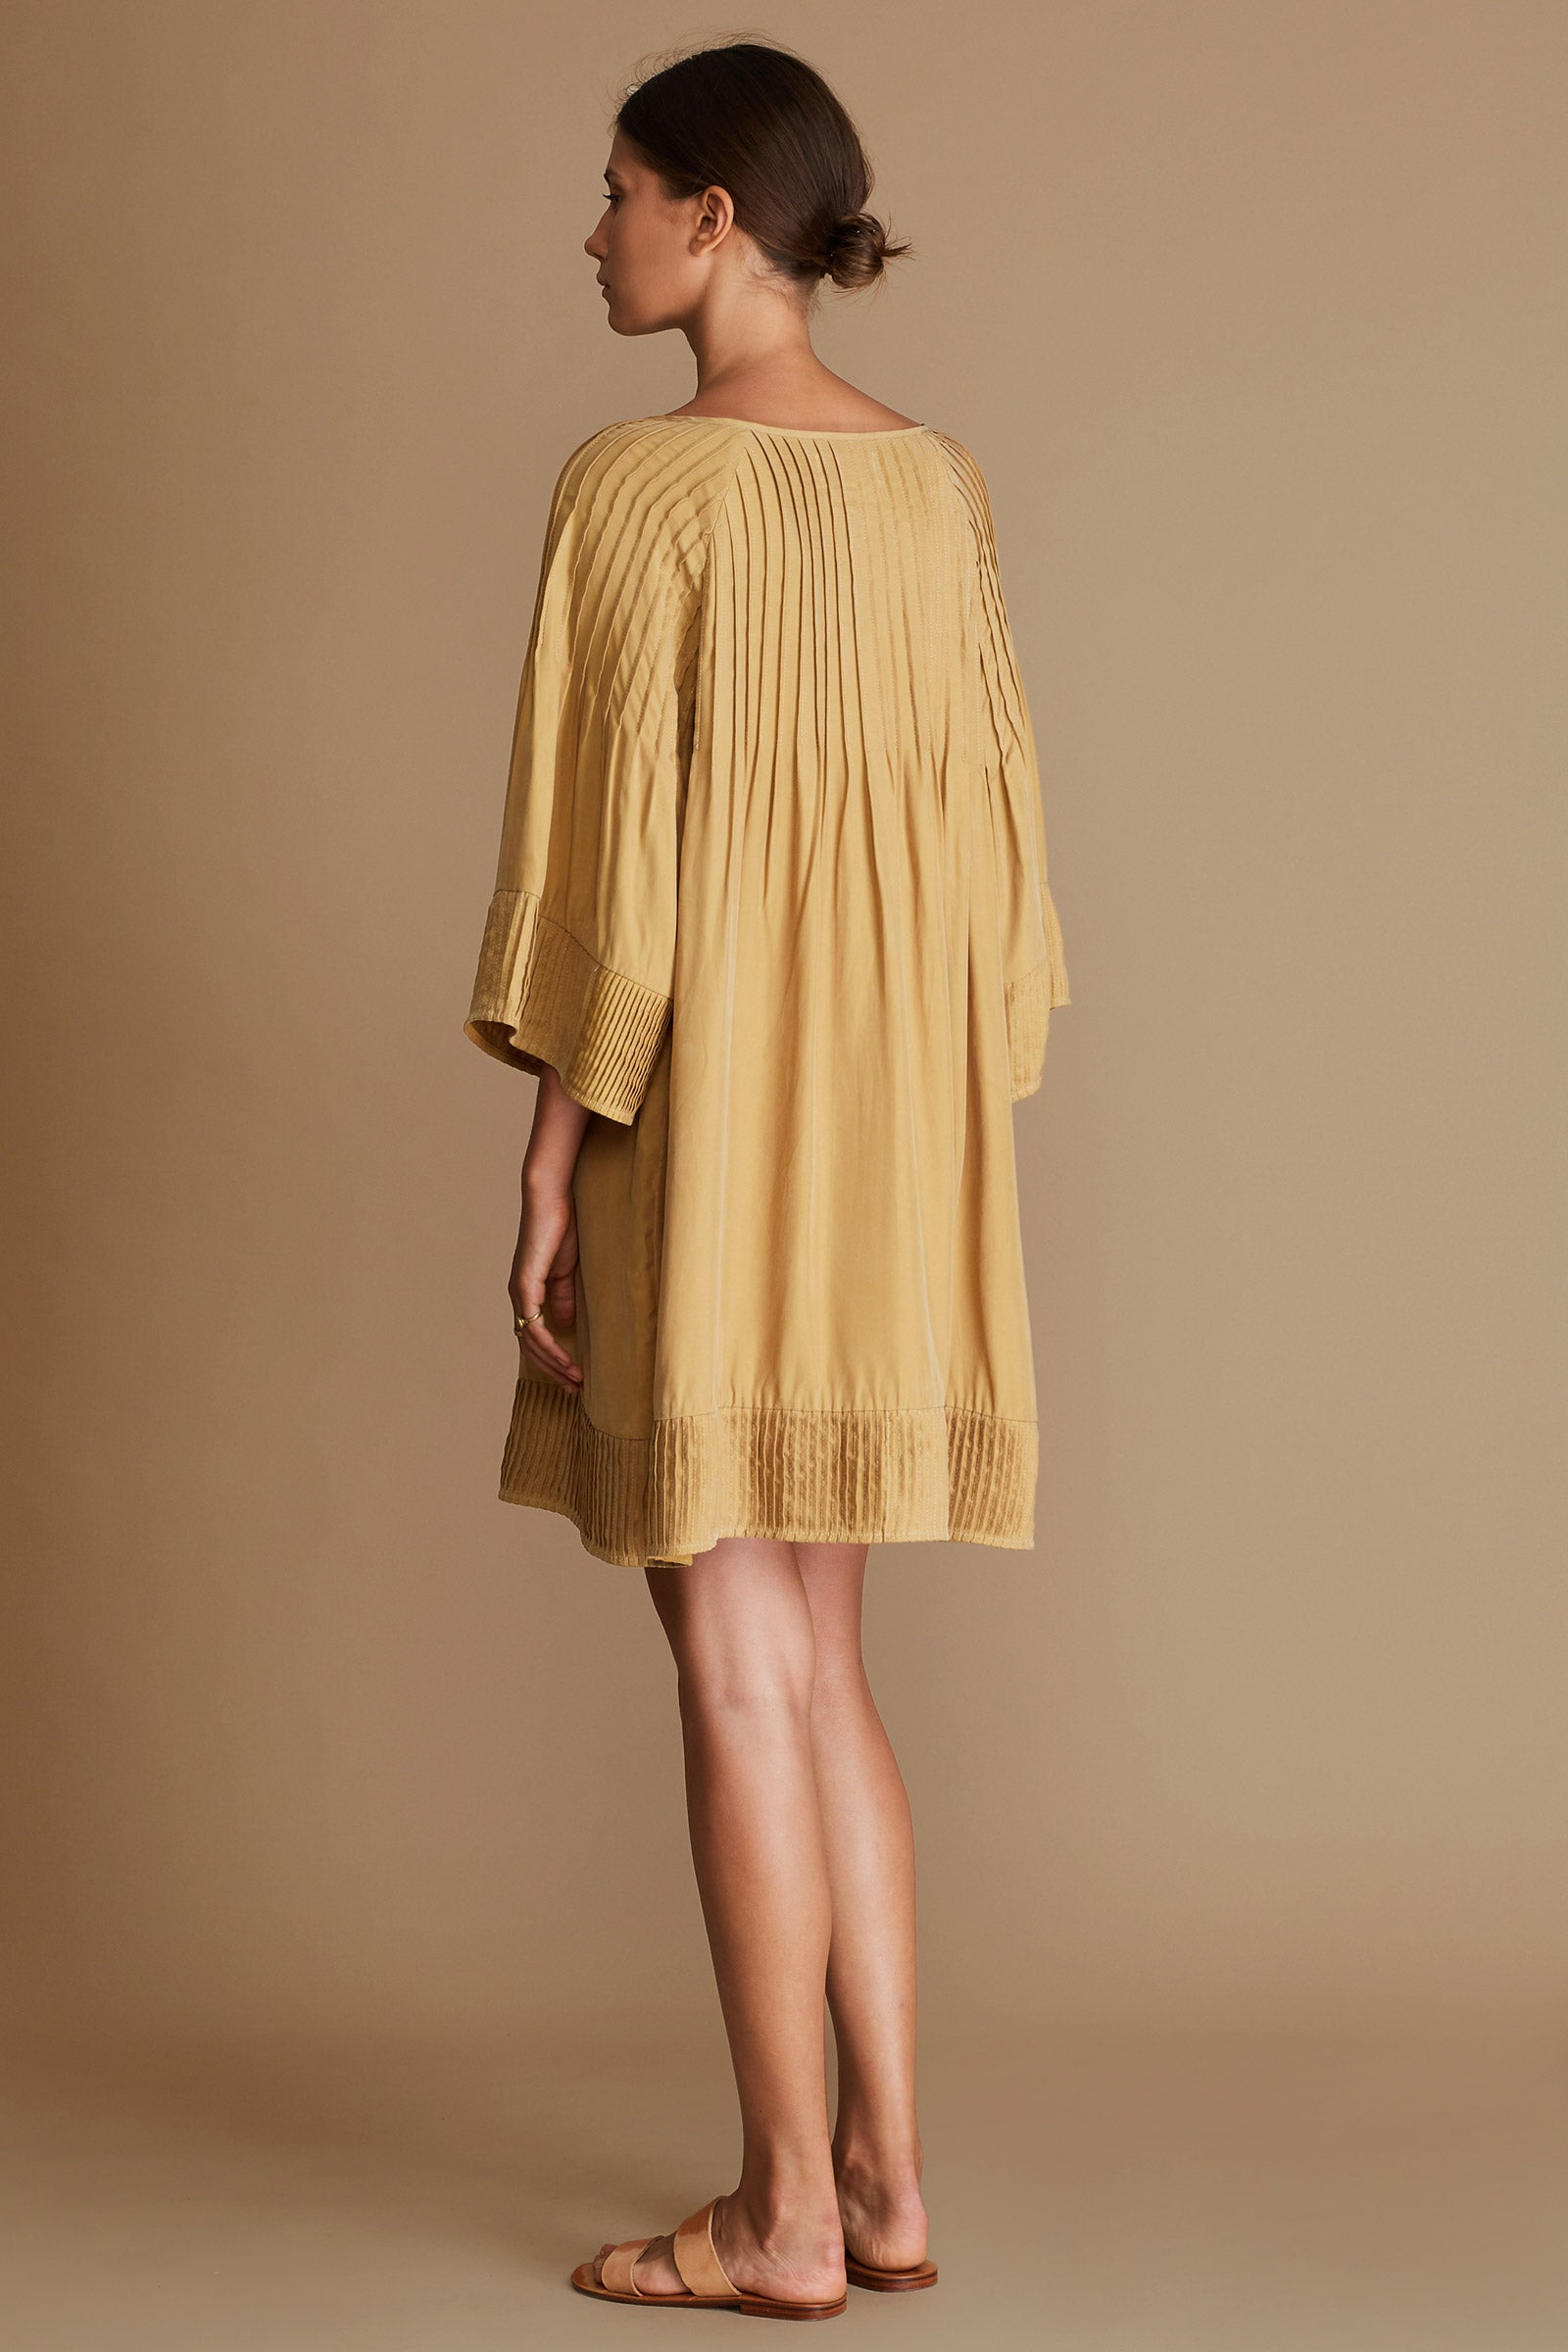 THE BELLONA DRESS